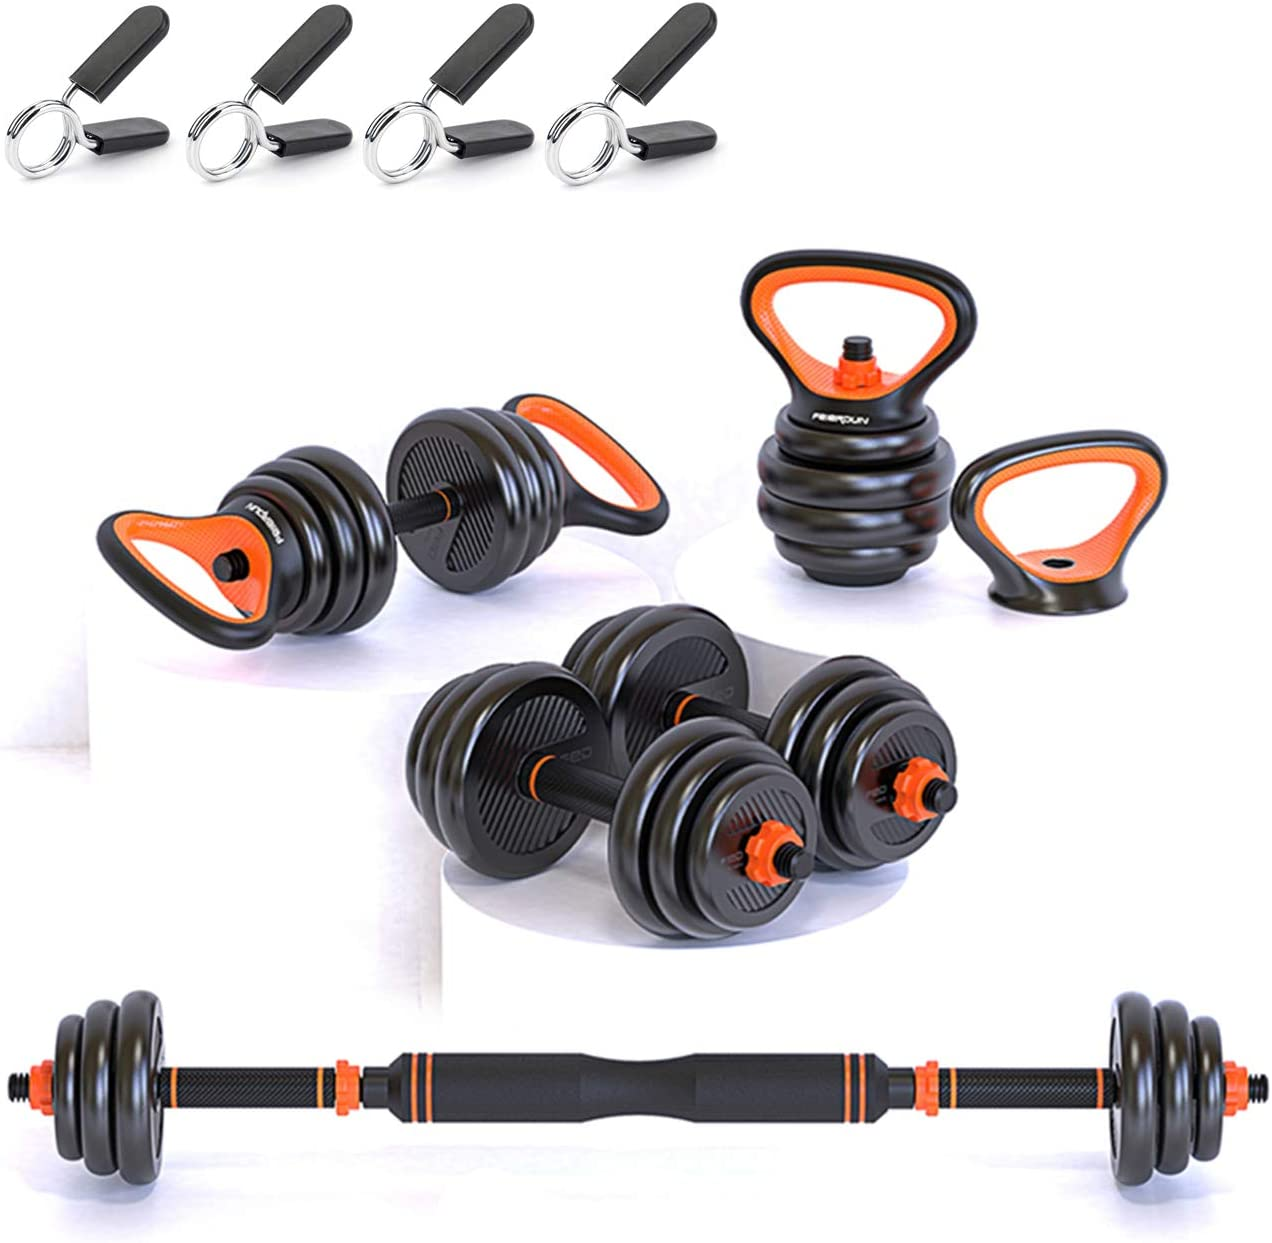 Gintonique Adjustable Dumbbells, Dumbbell Set, Free Weights Dumbbells Set of 2, Kettlebell, Barbell, Push-up Set, Home Work Out for Men and Women. Total Weight Up to 44LB, 66LB, 88LB